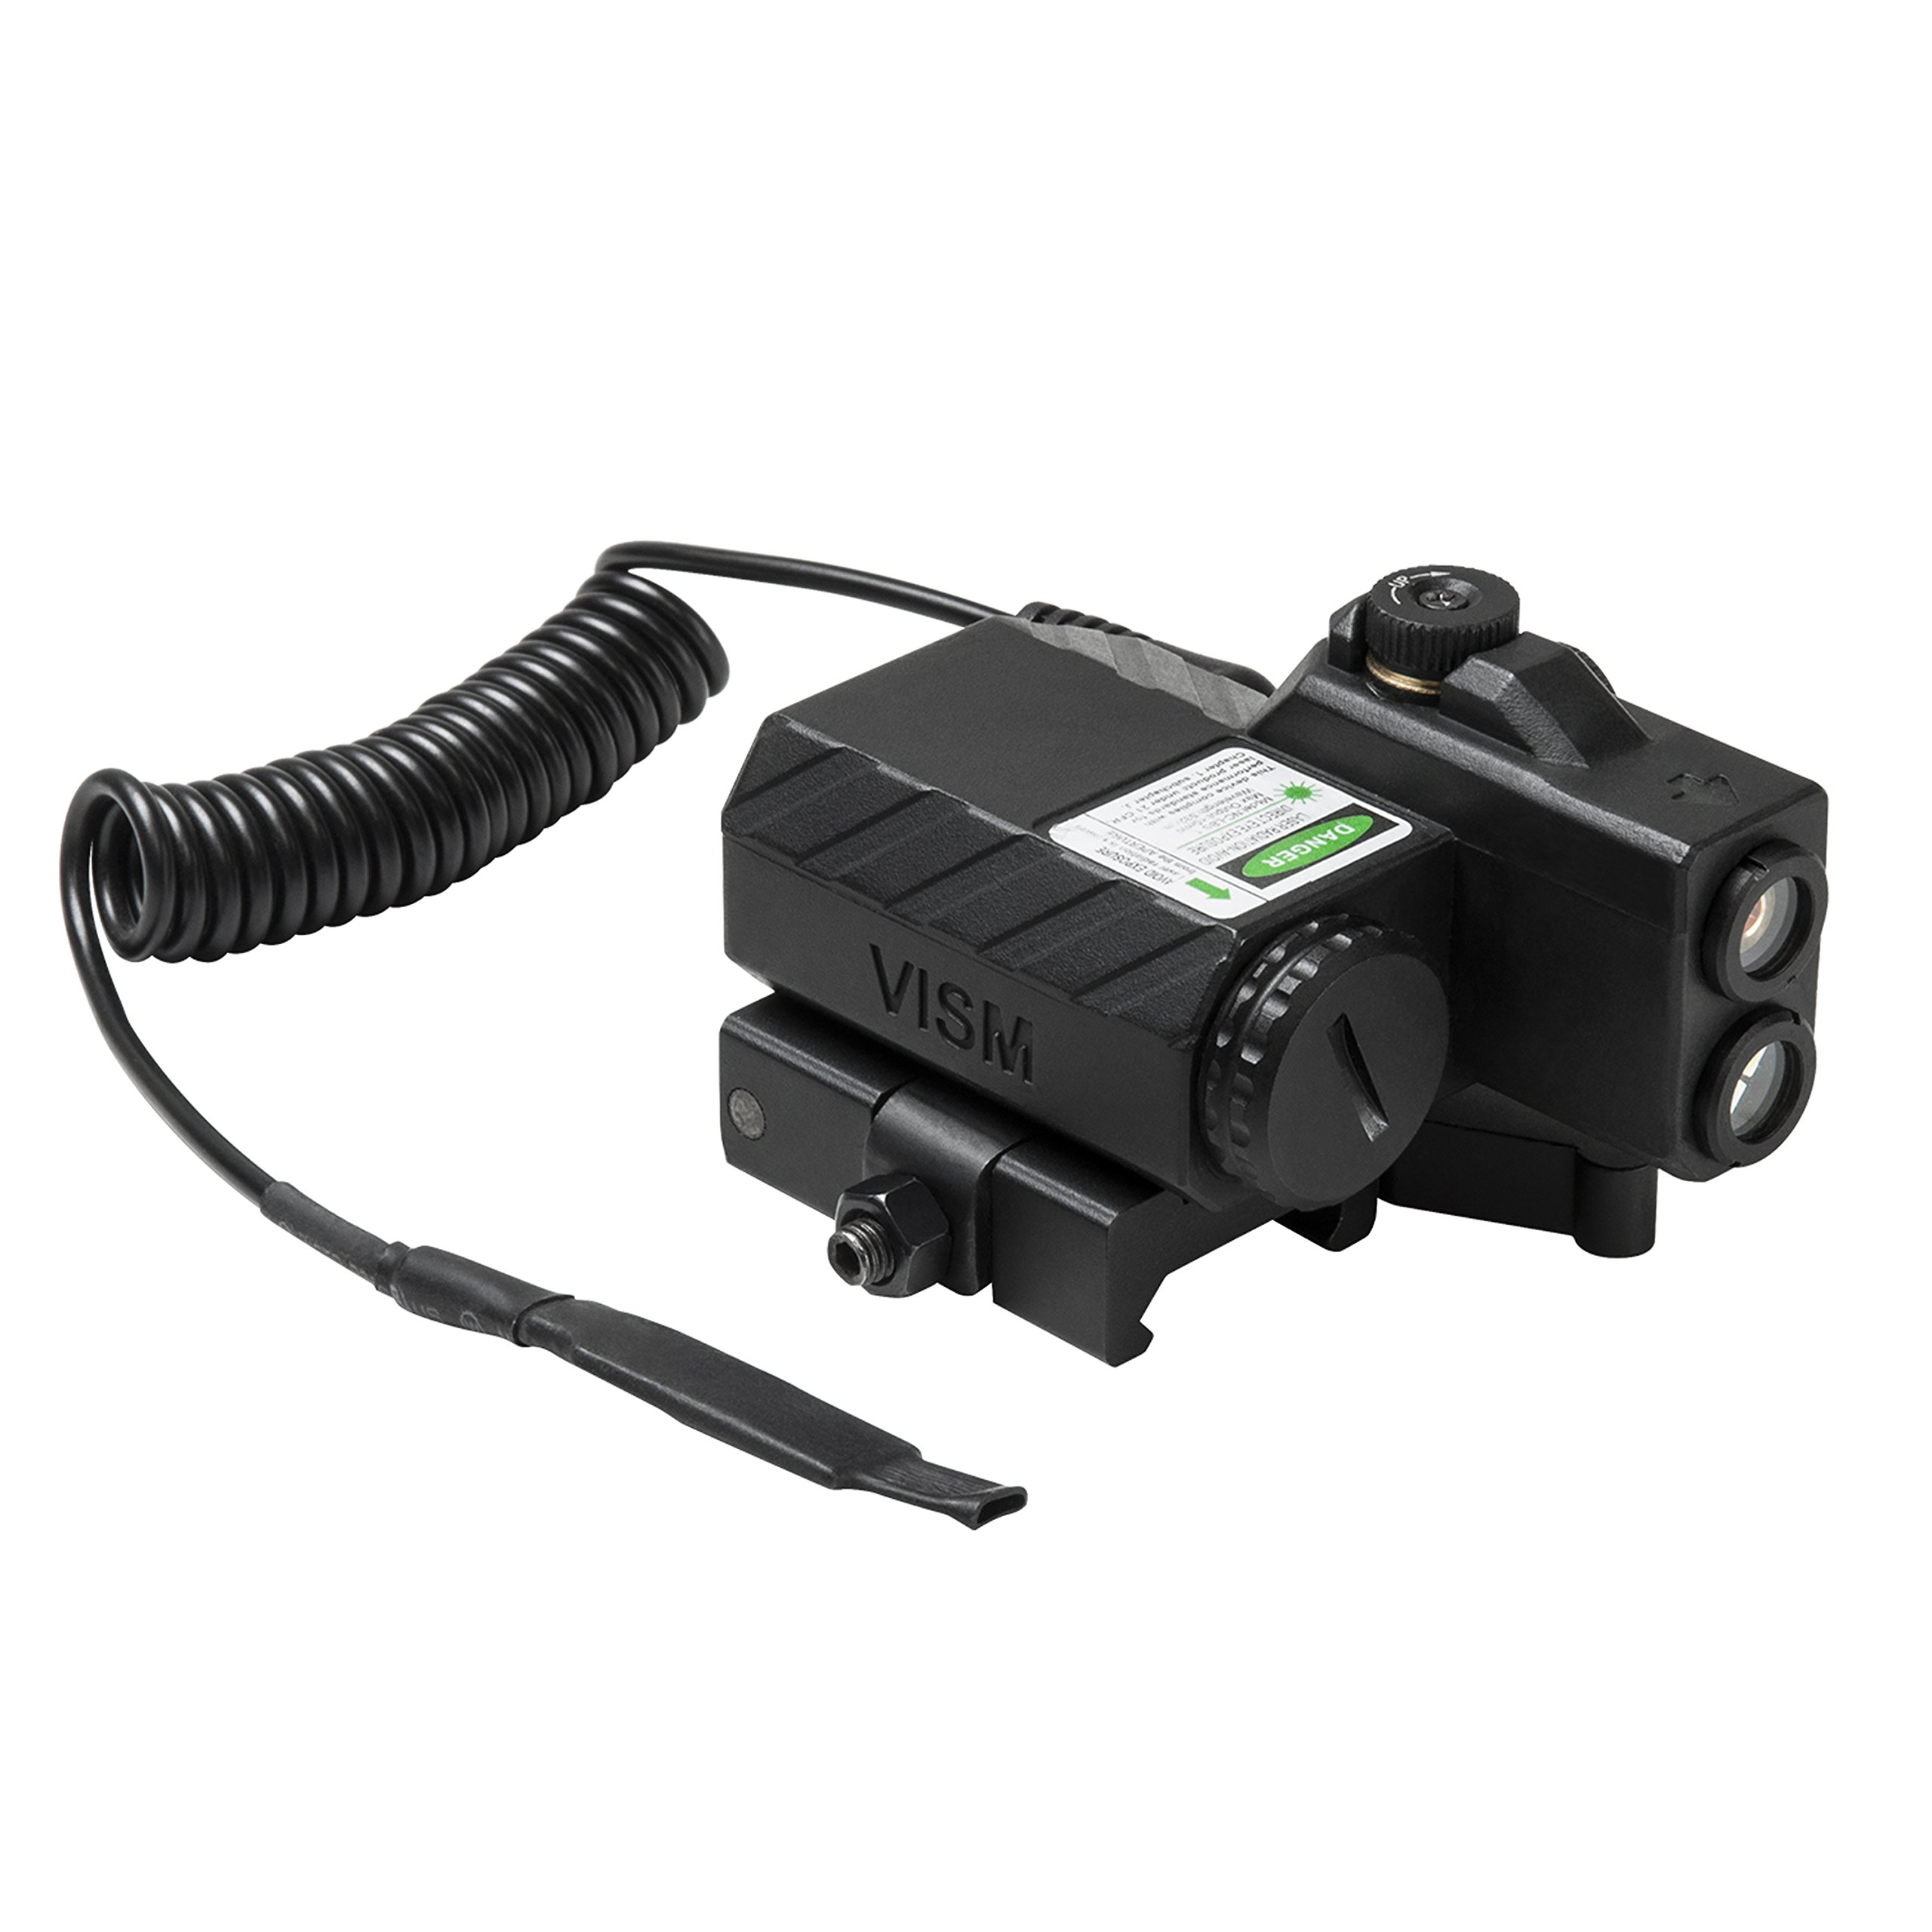 NcSTAR VLGSNVQRB Offset Green Laser Designator with Navigation LEDs, Black by NcSTAR (Image #1)